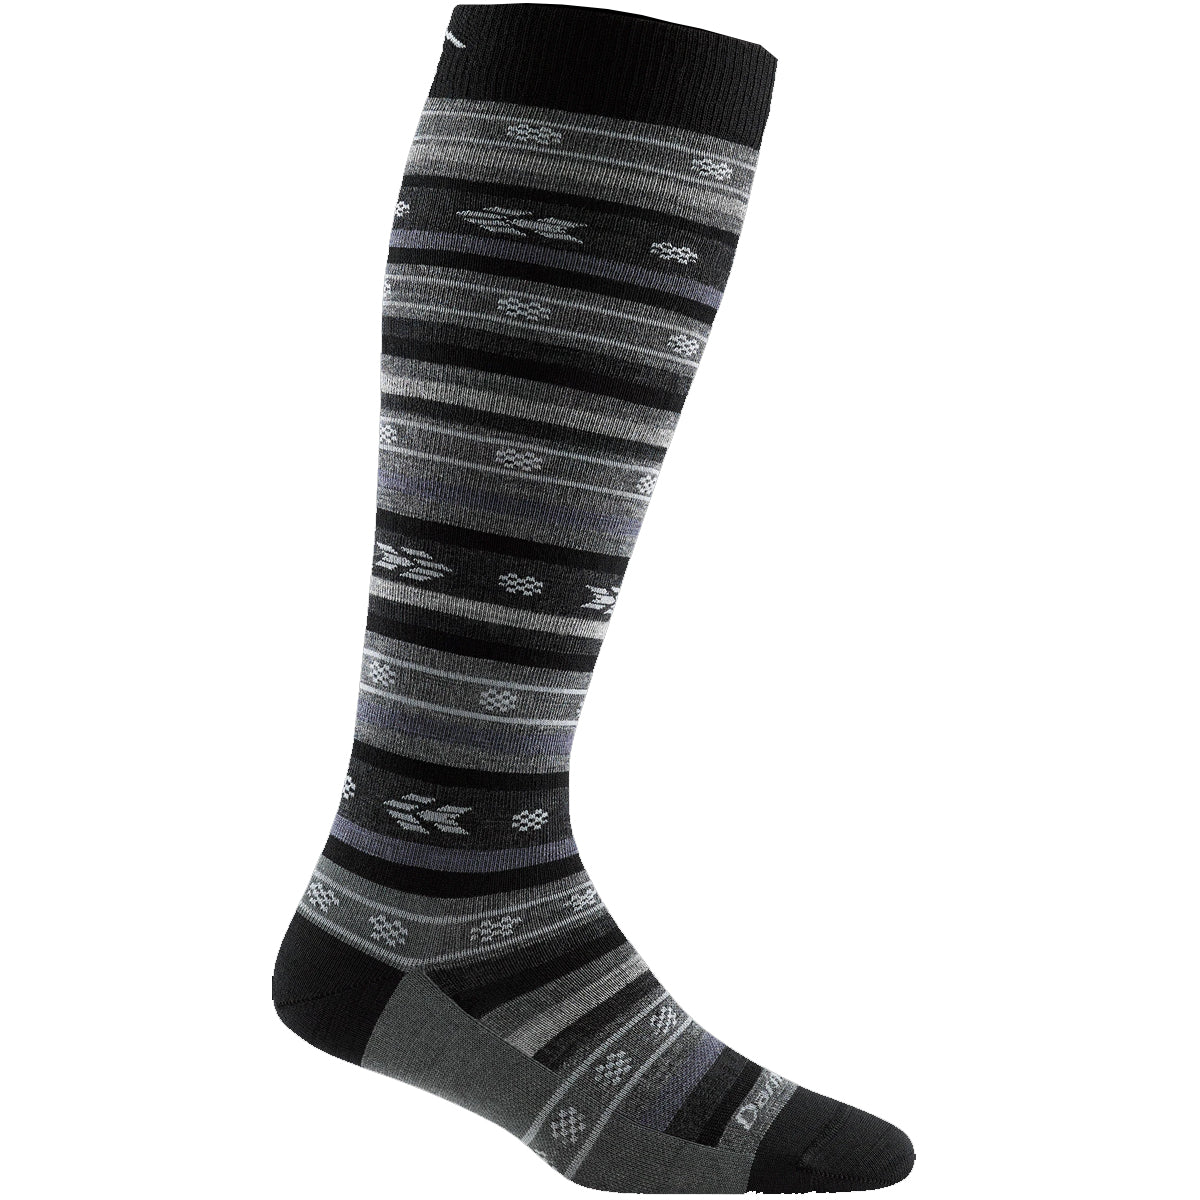 Darn Tough Women's Bronwyn Knee High Lightweight Lifestyle Socks - Black